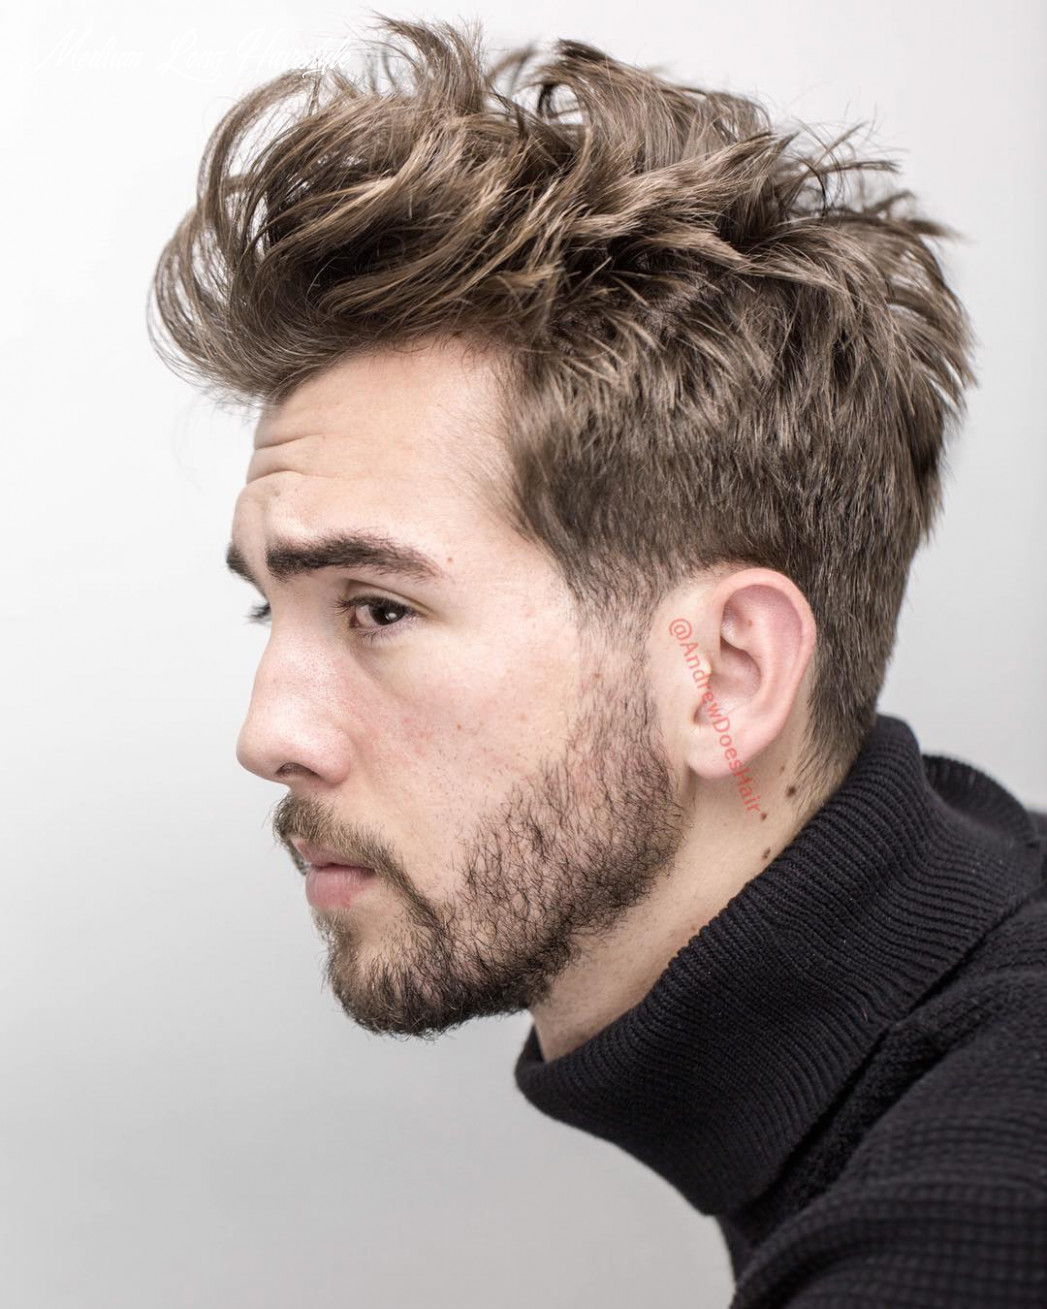 The 9 best medium length hairstyles for men | improb medium long hairstyle